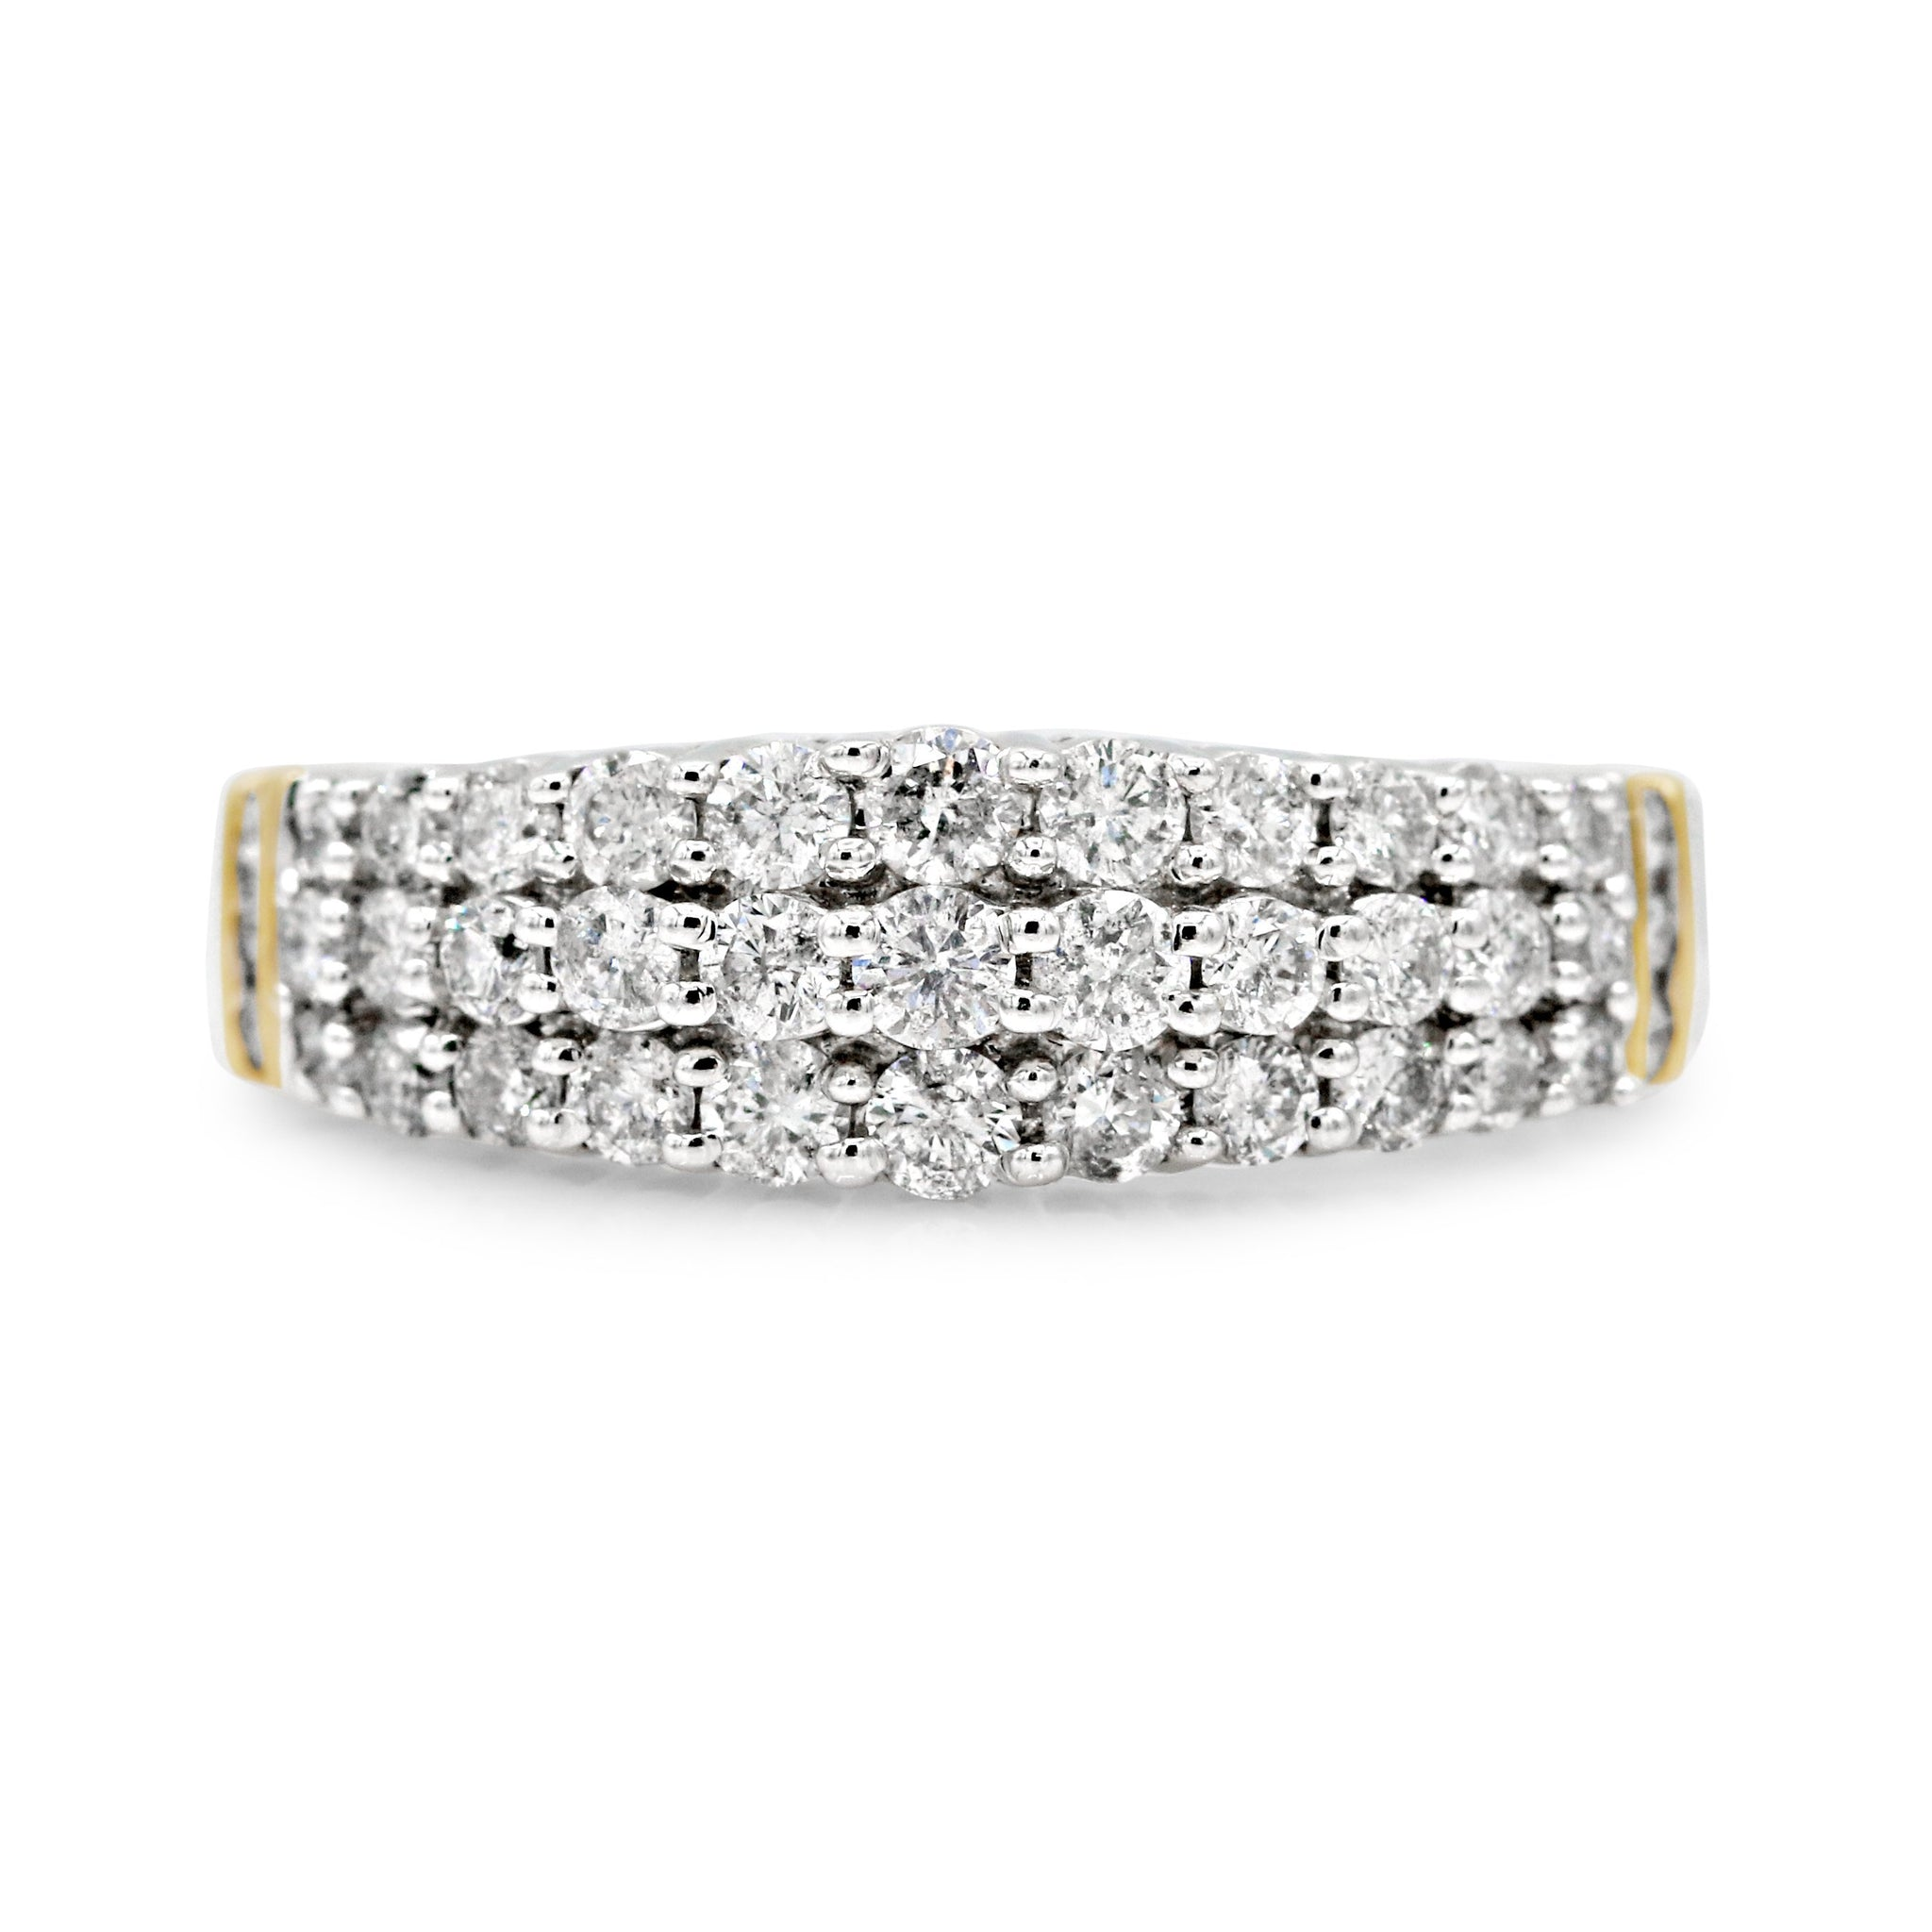 Ethereal 14K Two-Tone Diamond Pave Band